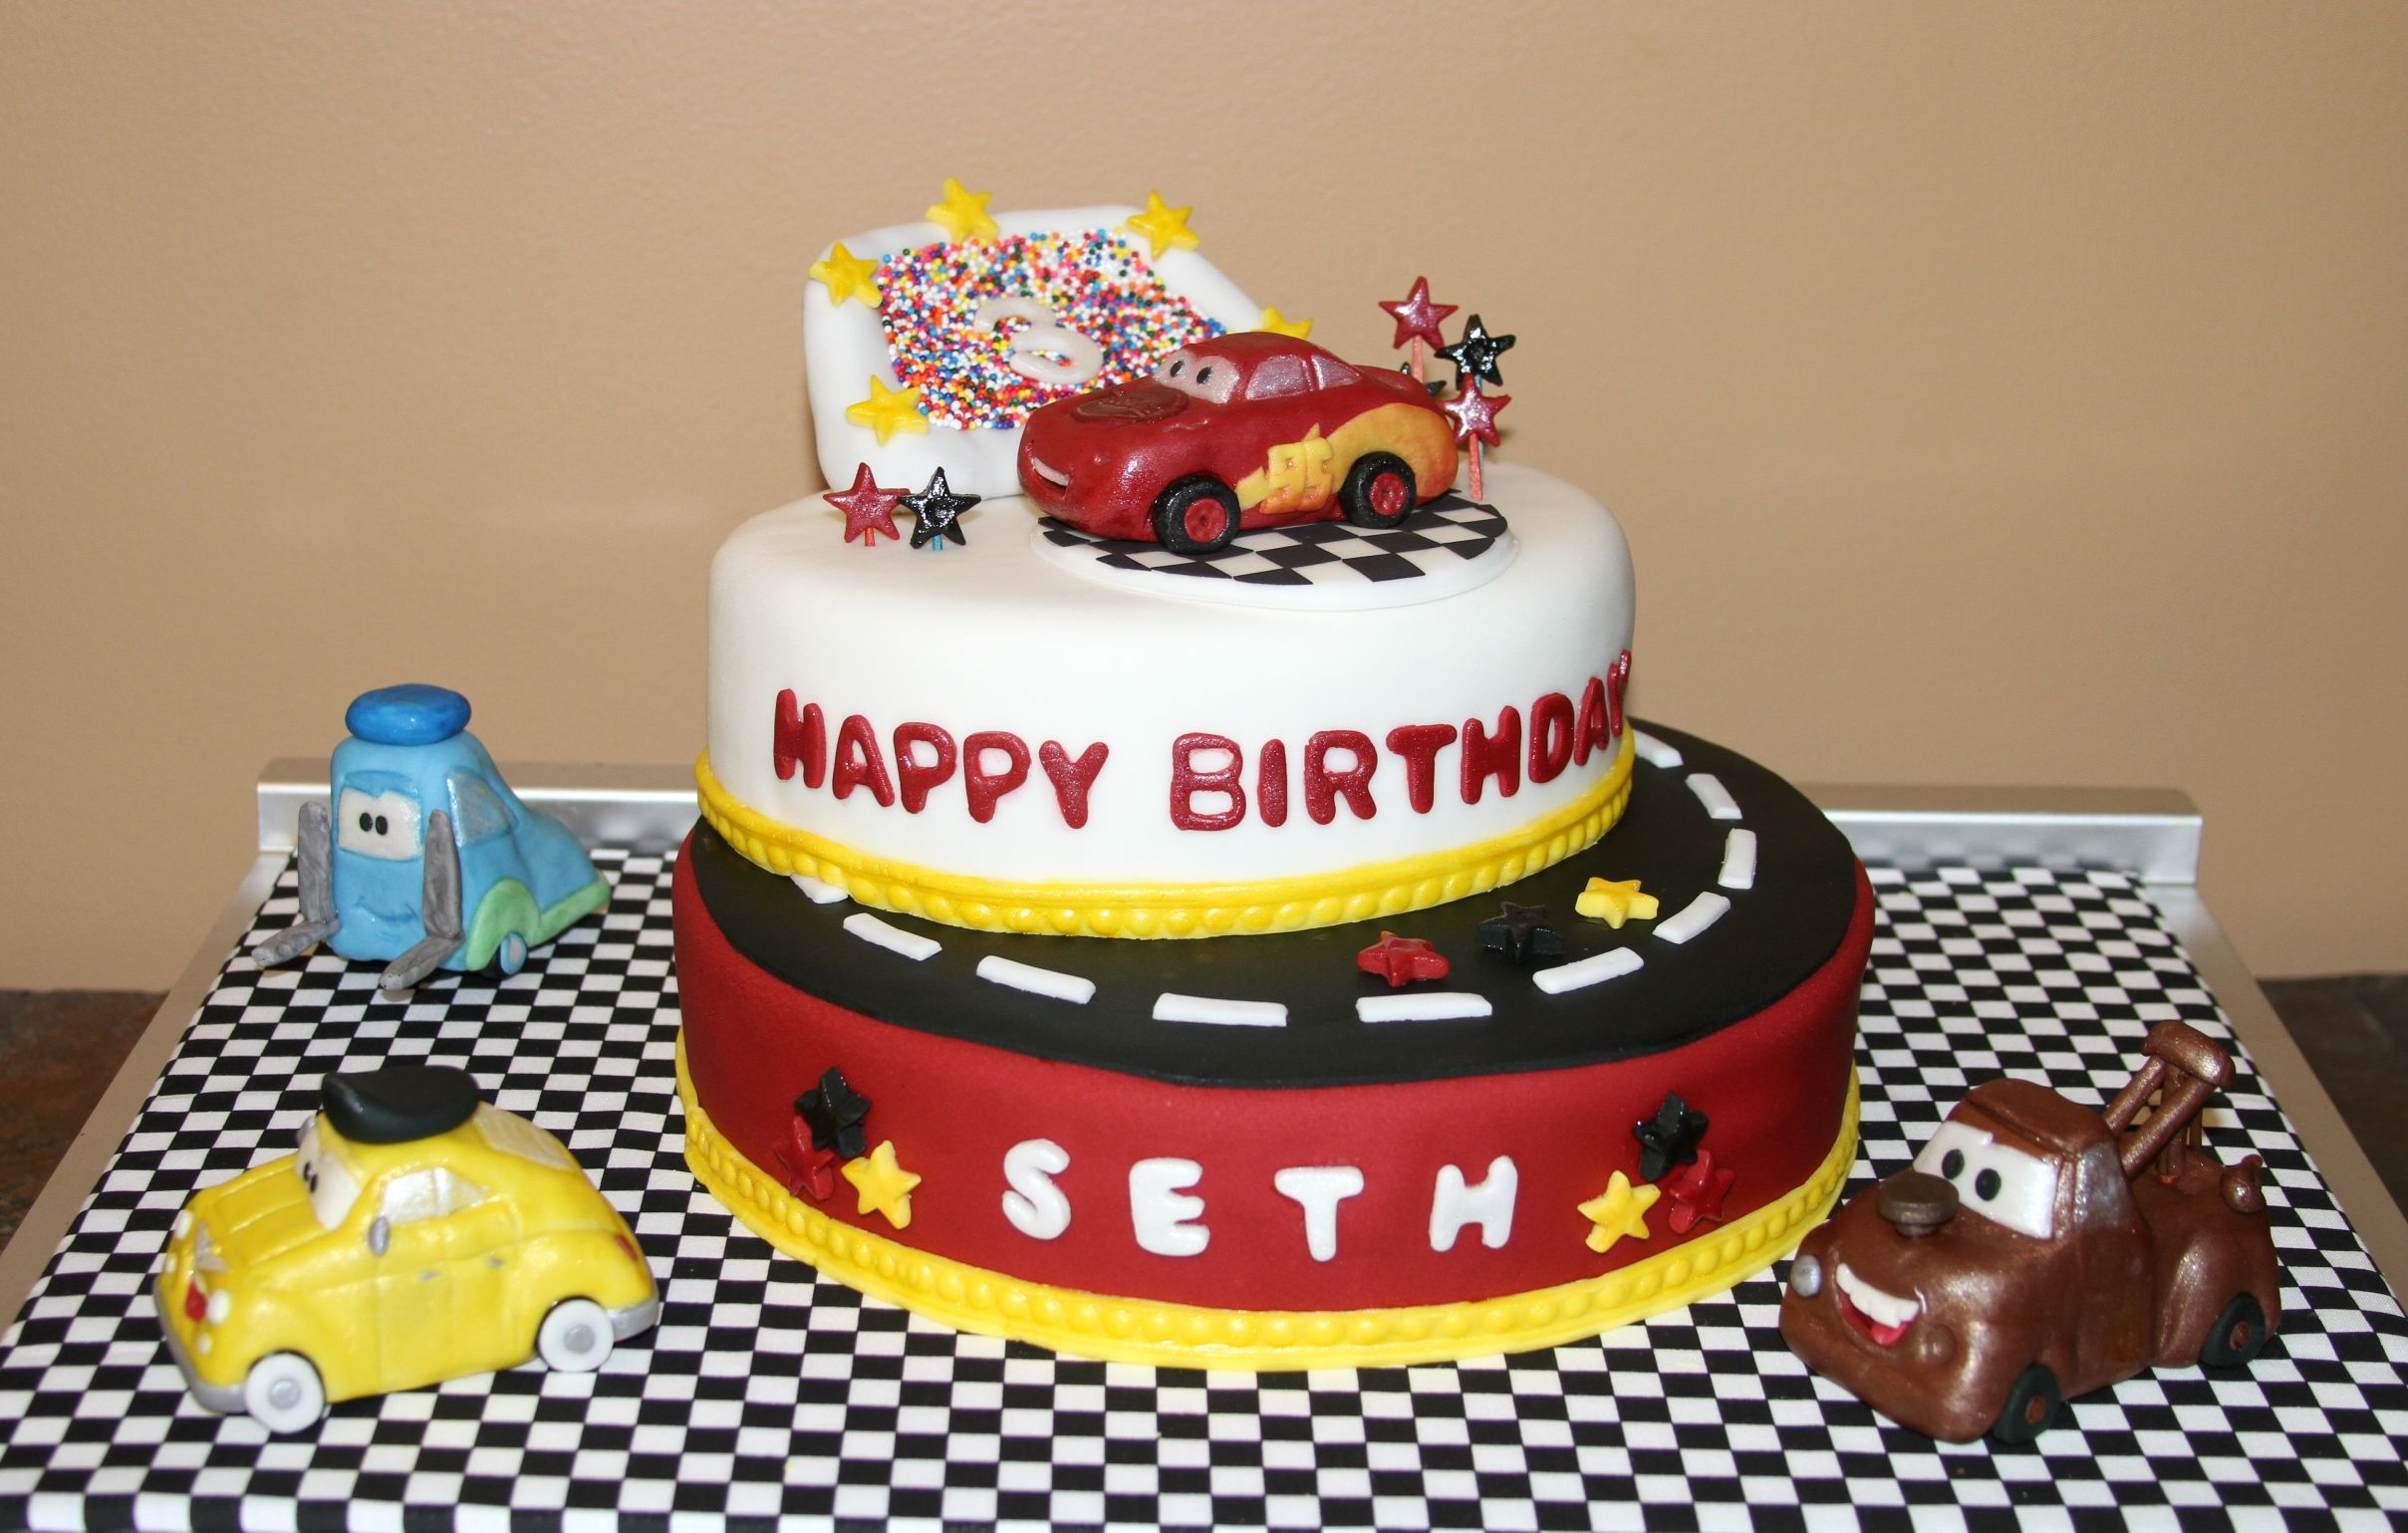 Cars Birthday Cake - All Edible, Hand Crafted Cars and Decorations      www.BeyondUsualCakes.com